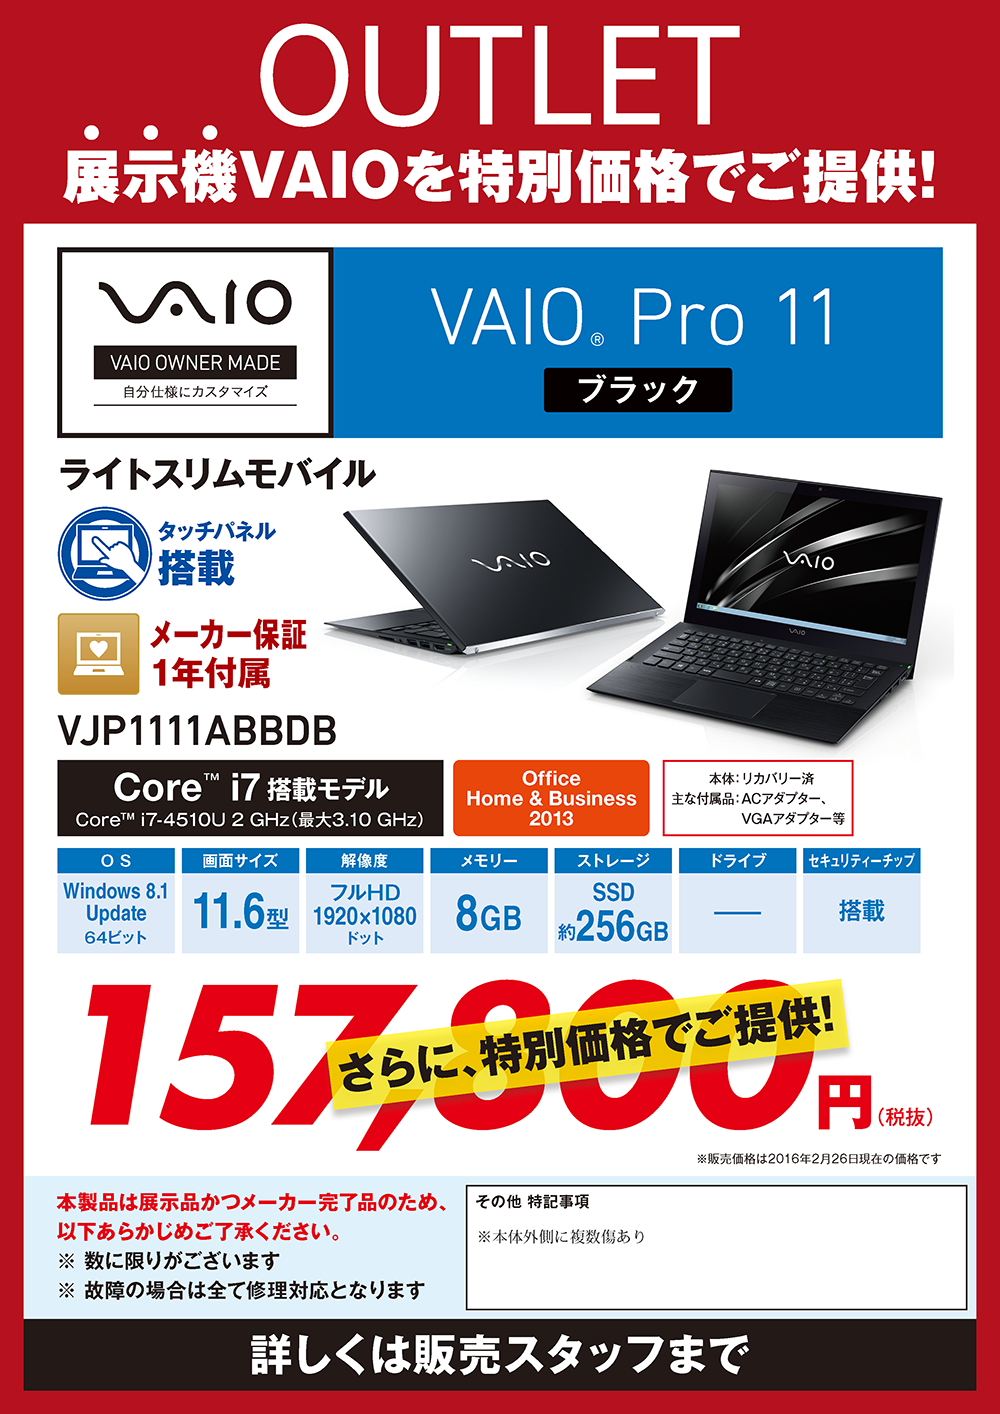 VAIO_outlet-price_ページ_12